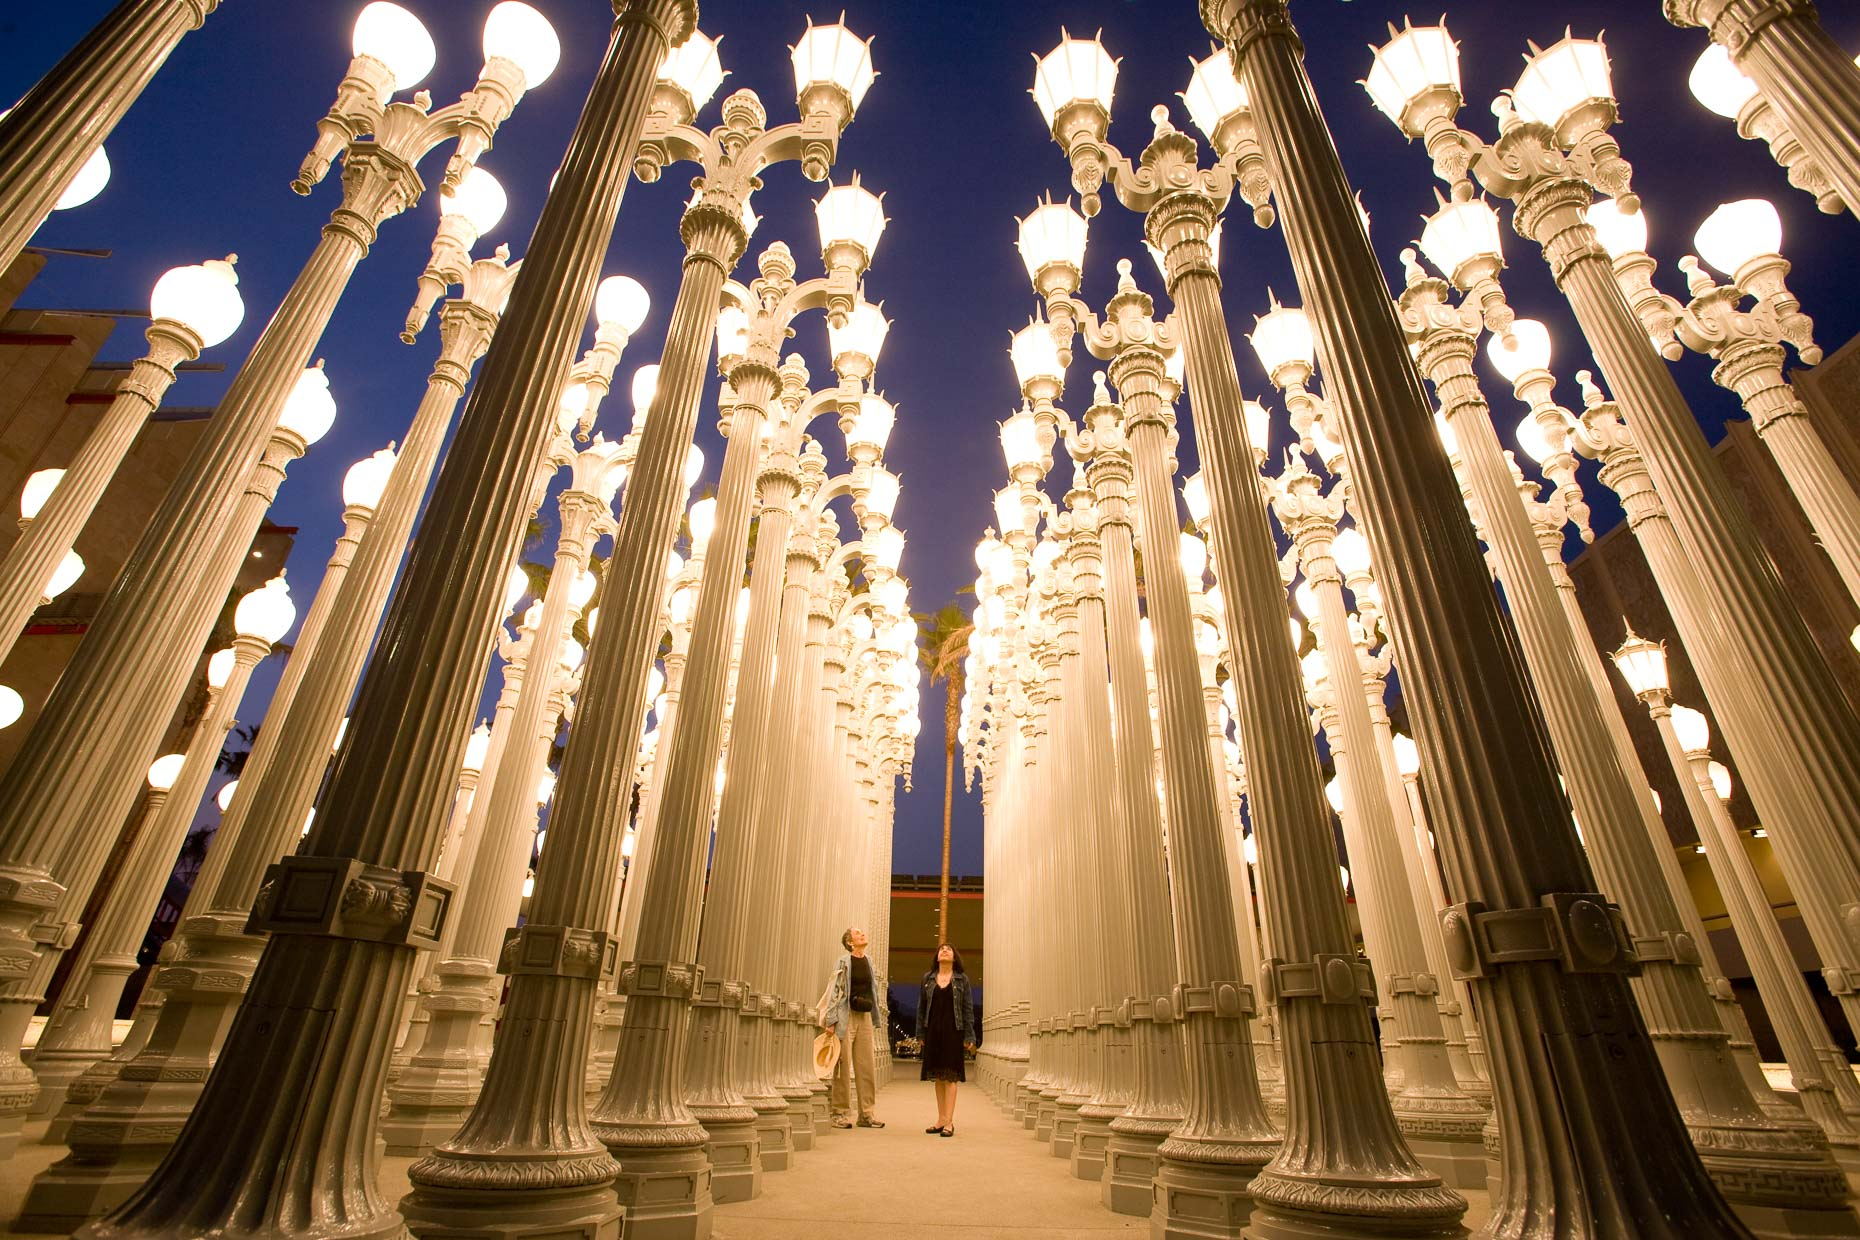 Two women looking at street lights art installation called Urban Lights at LACMA in Los Angeles by David Zaitz